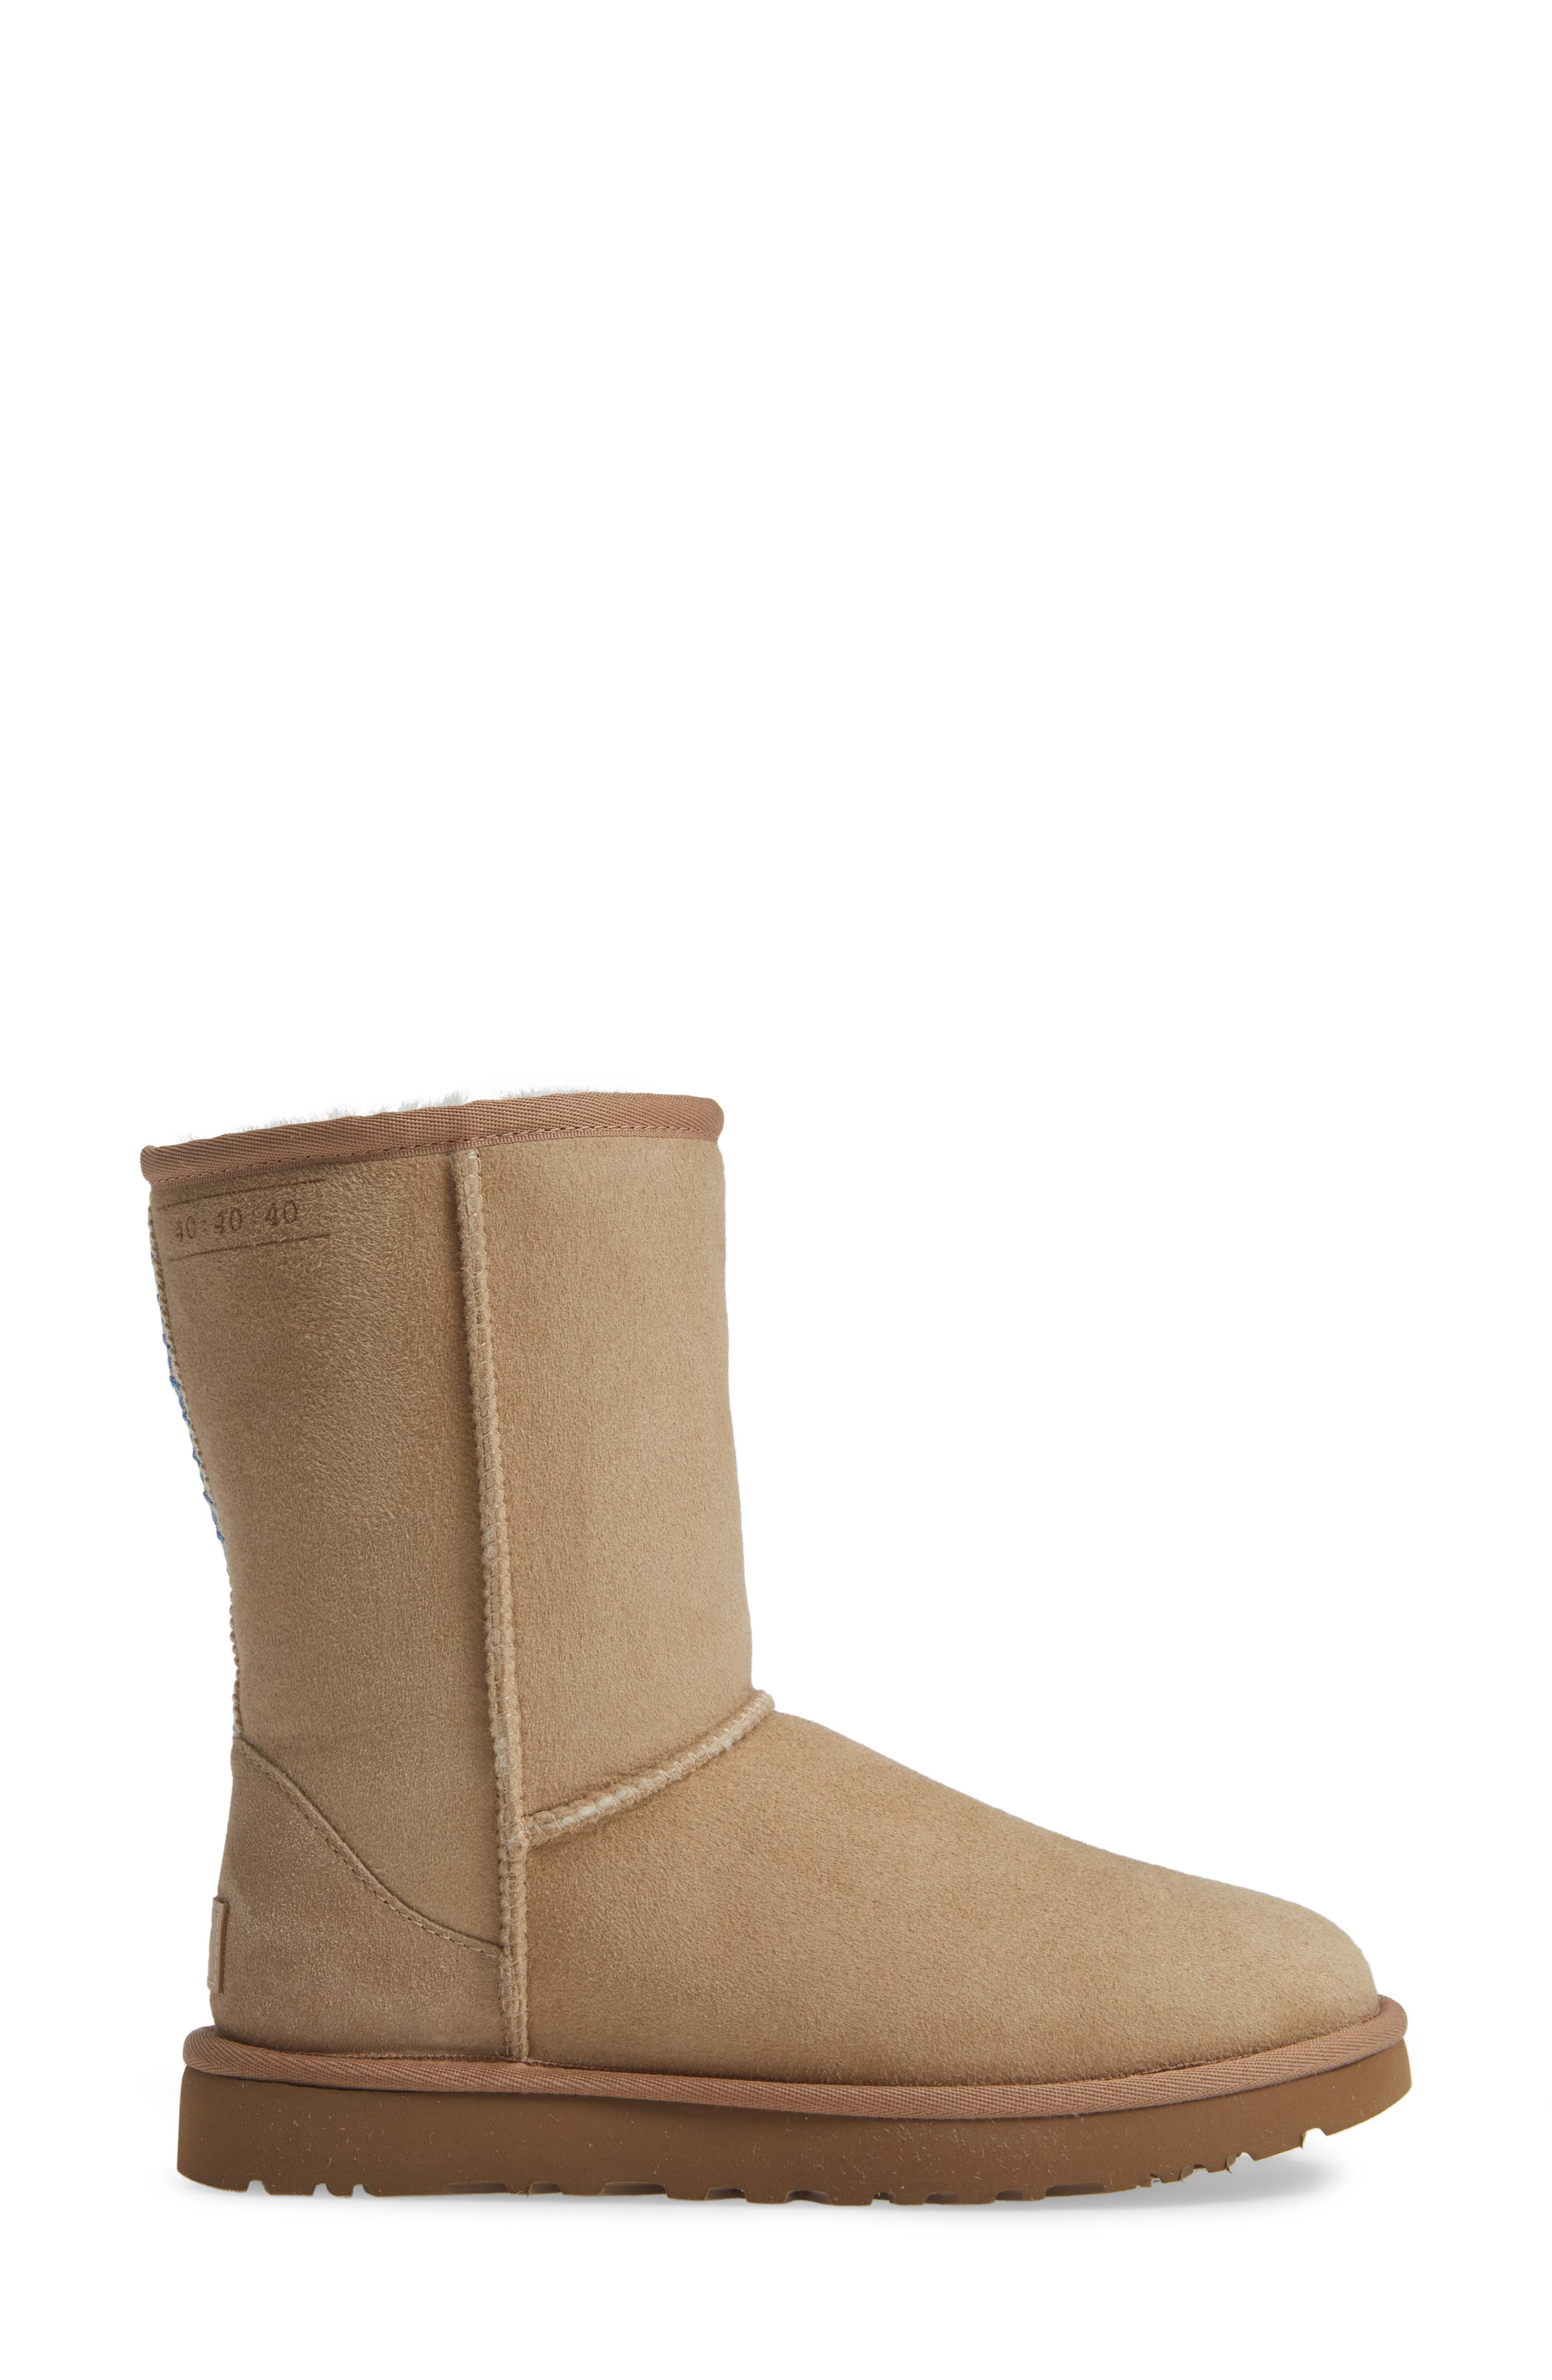 Classic Short 40:40:40 Genuine Shearling Boot,                             Alternate thumbnail 3, color,                             SAND SUEDE